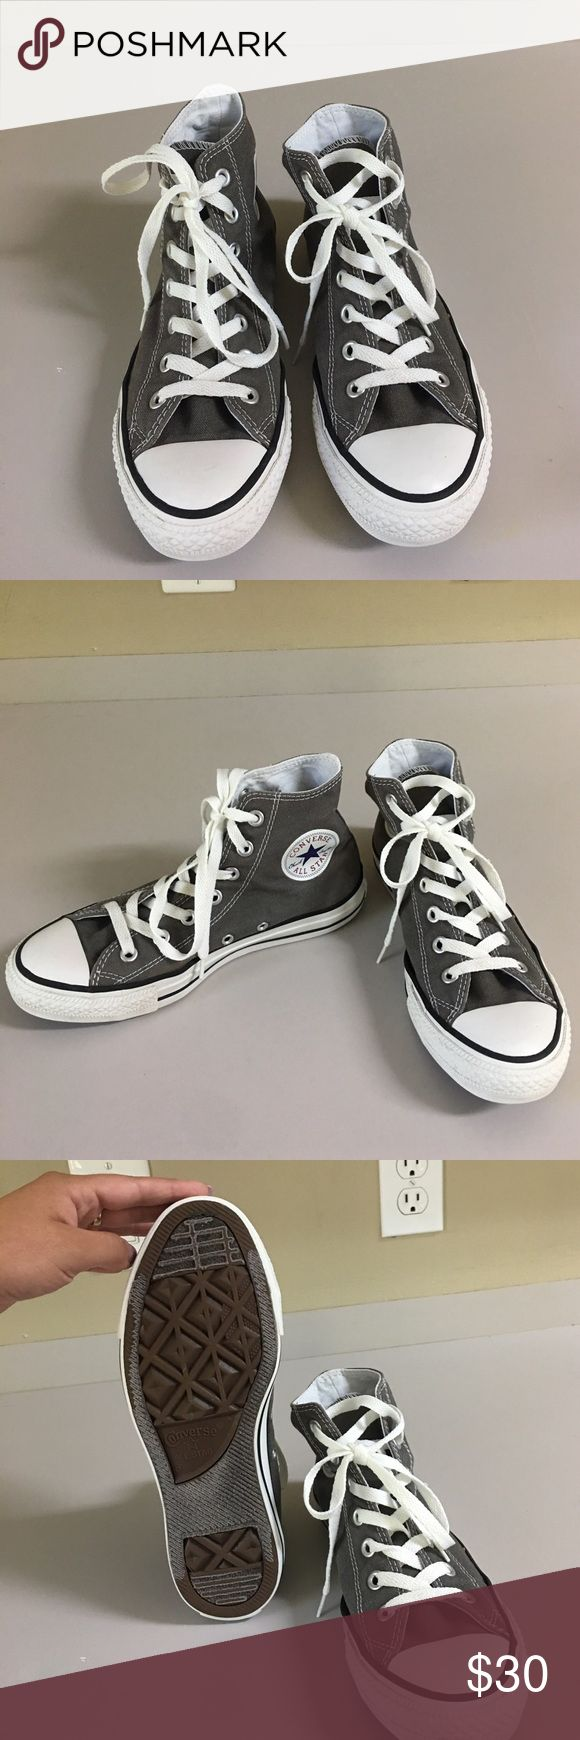 Grey high top converse Grey high top converse! Still in great condition 👻👟 Size 8 woman Converse Shoes Sneakers